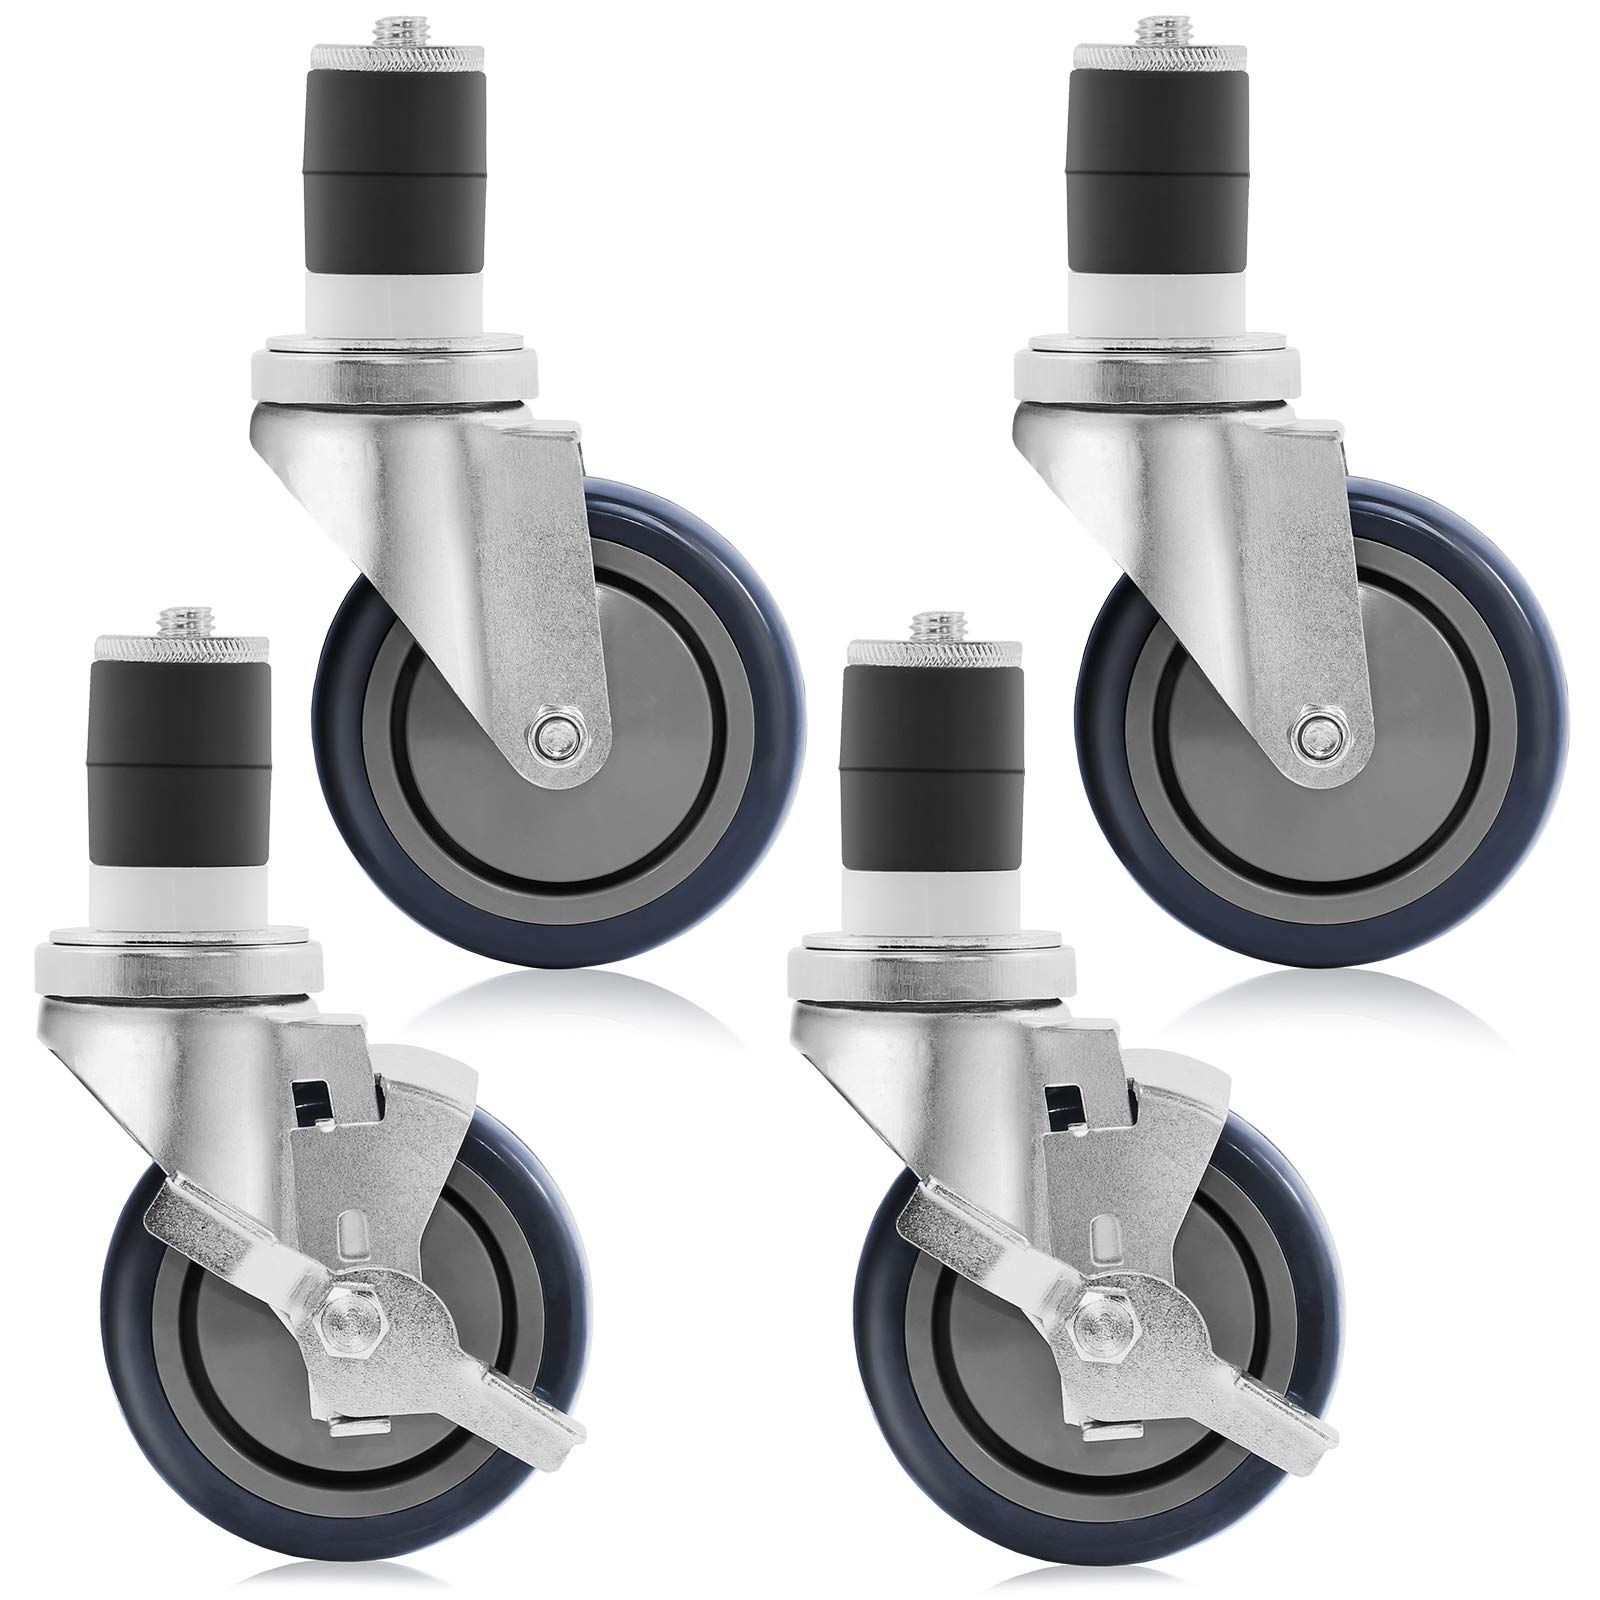 GRIDMANN 4 inch Caster Wheel Set for Commercial Kitchen Prep Tables, 2 Wheels with Brakes, 2 Without Brakes by GRIDMANN